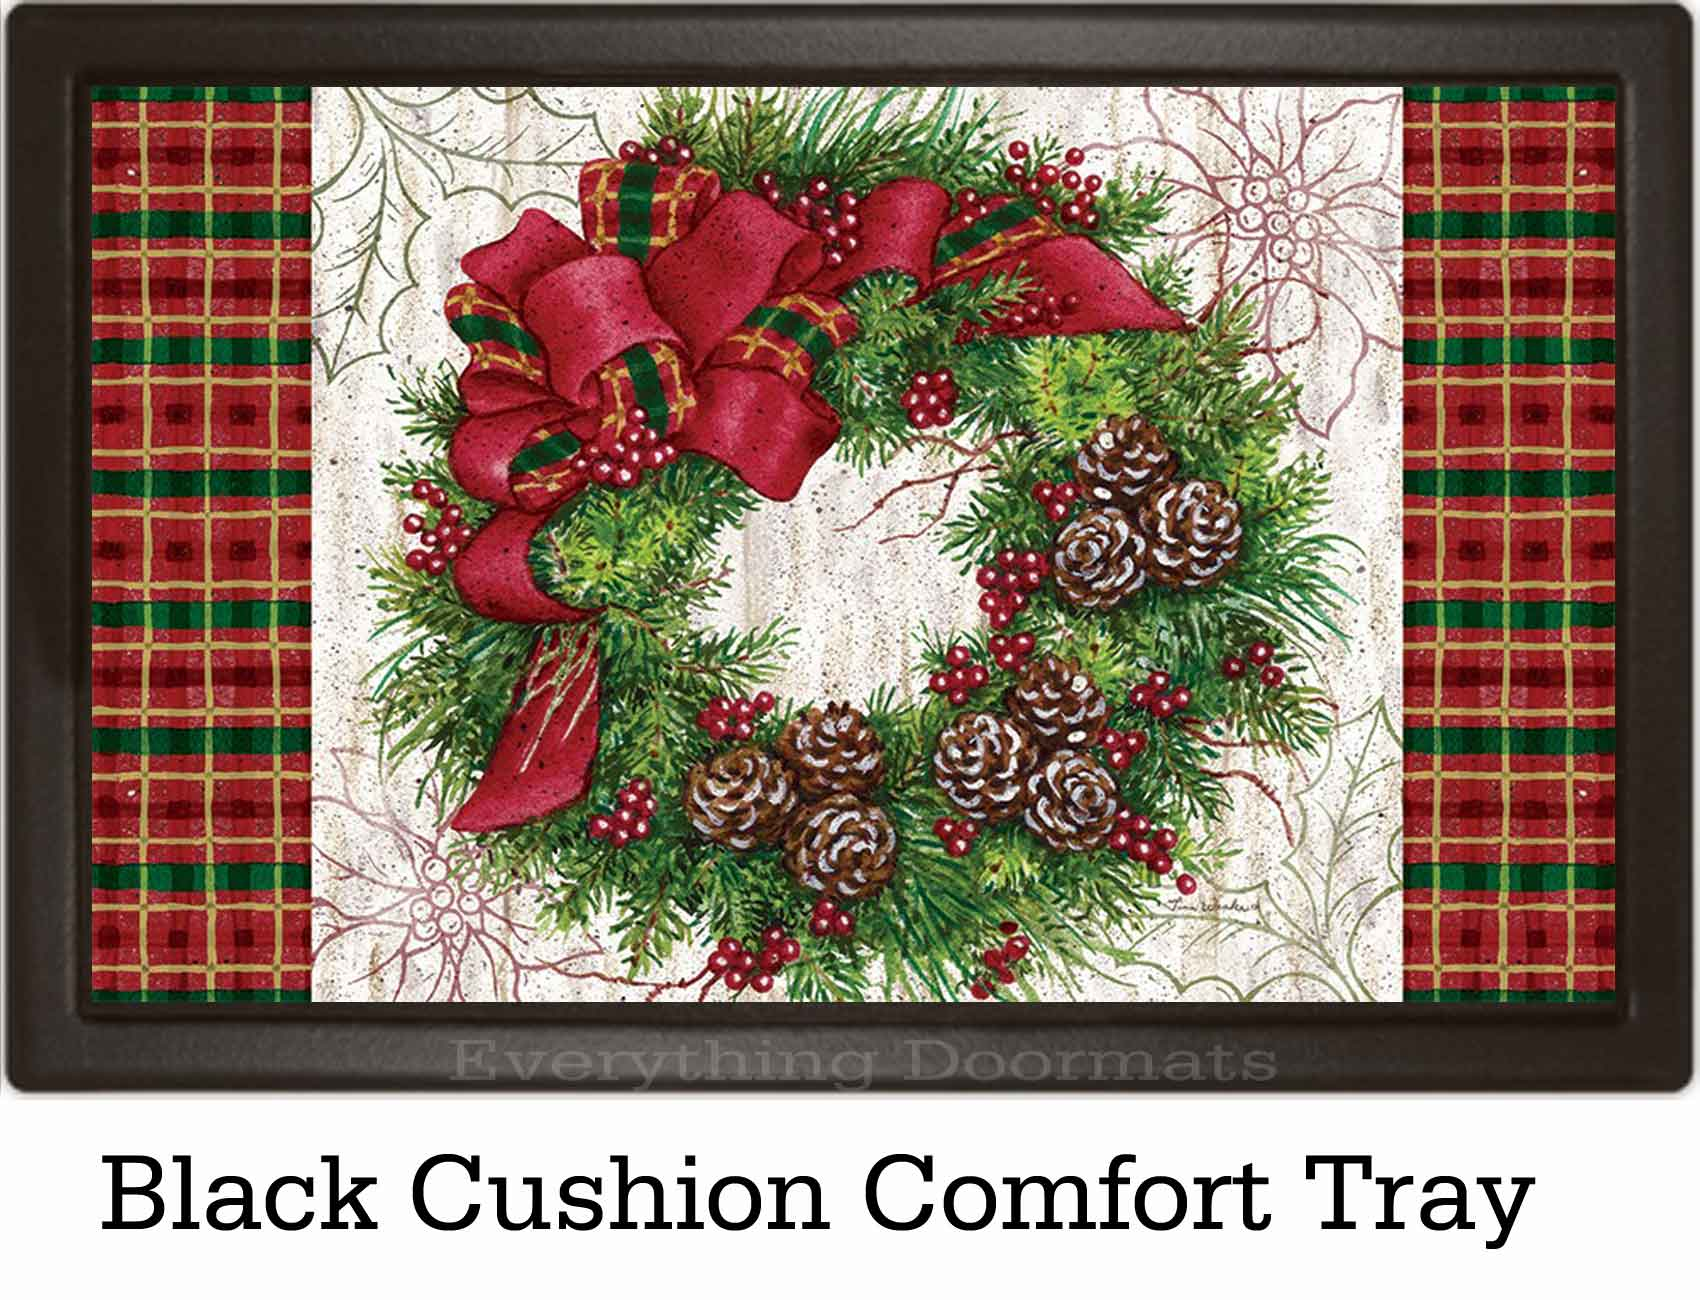 & Indoor u0026 Outdoor Christmas Wreath Insert Doormat - 18x30